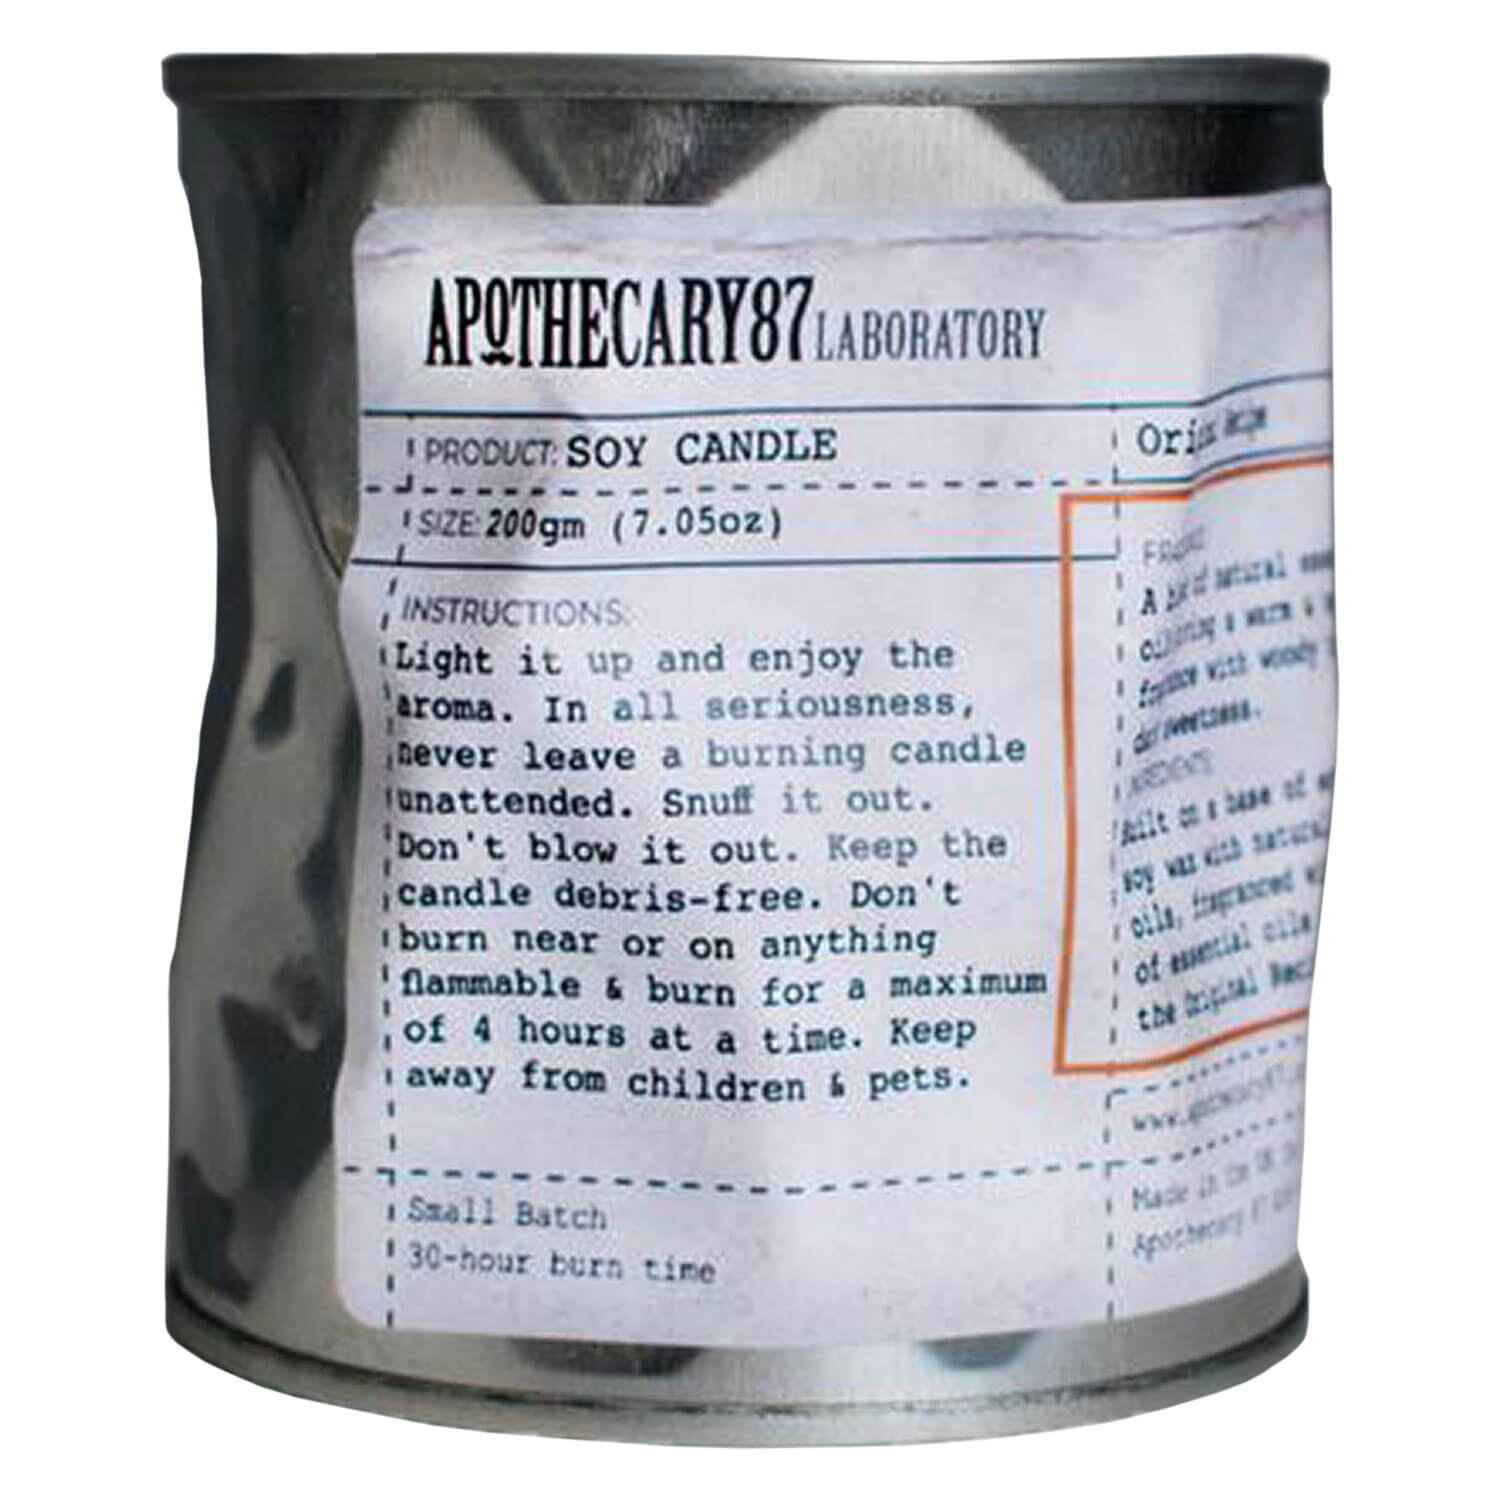 Apothecary87 Grooming - Soy Candle Original Recipe